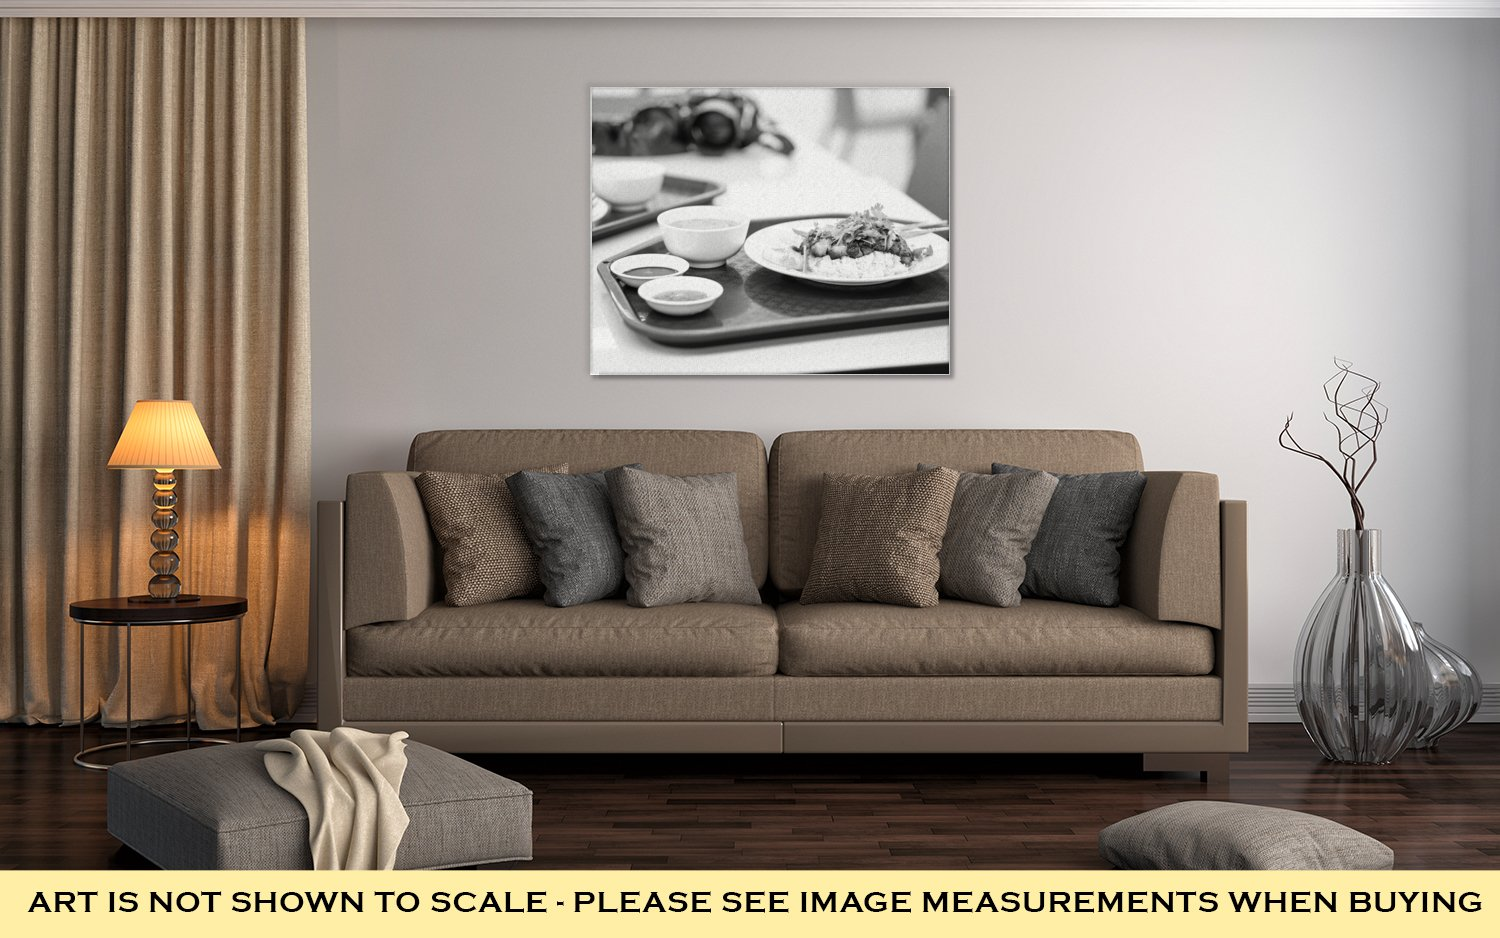 Ashley Canvas Thai Food Rice With Pork Chinese Style At Airport Lounge In Bangkok Asian Fast, Kitchen Bedroom Living Room Art, Black/White 24x30, AG5874661 by Ashley Canvas